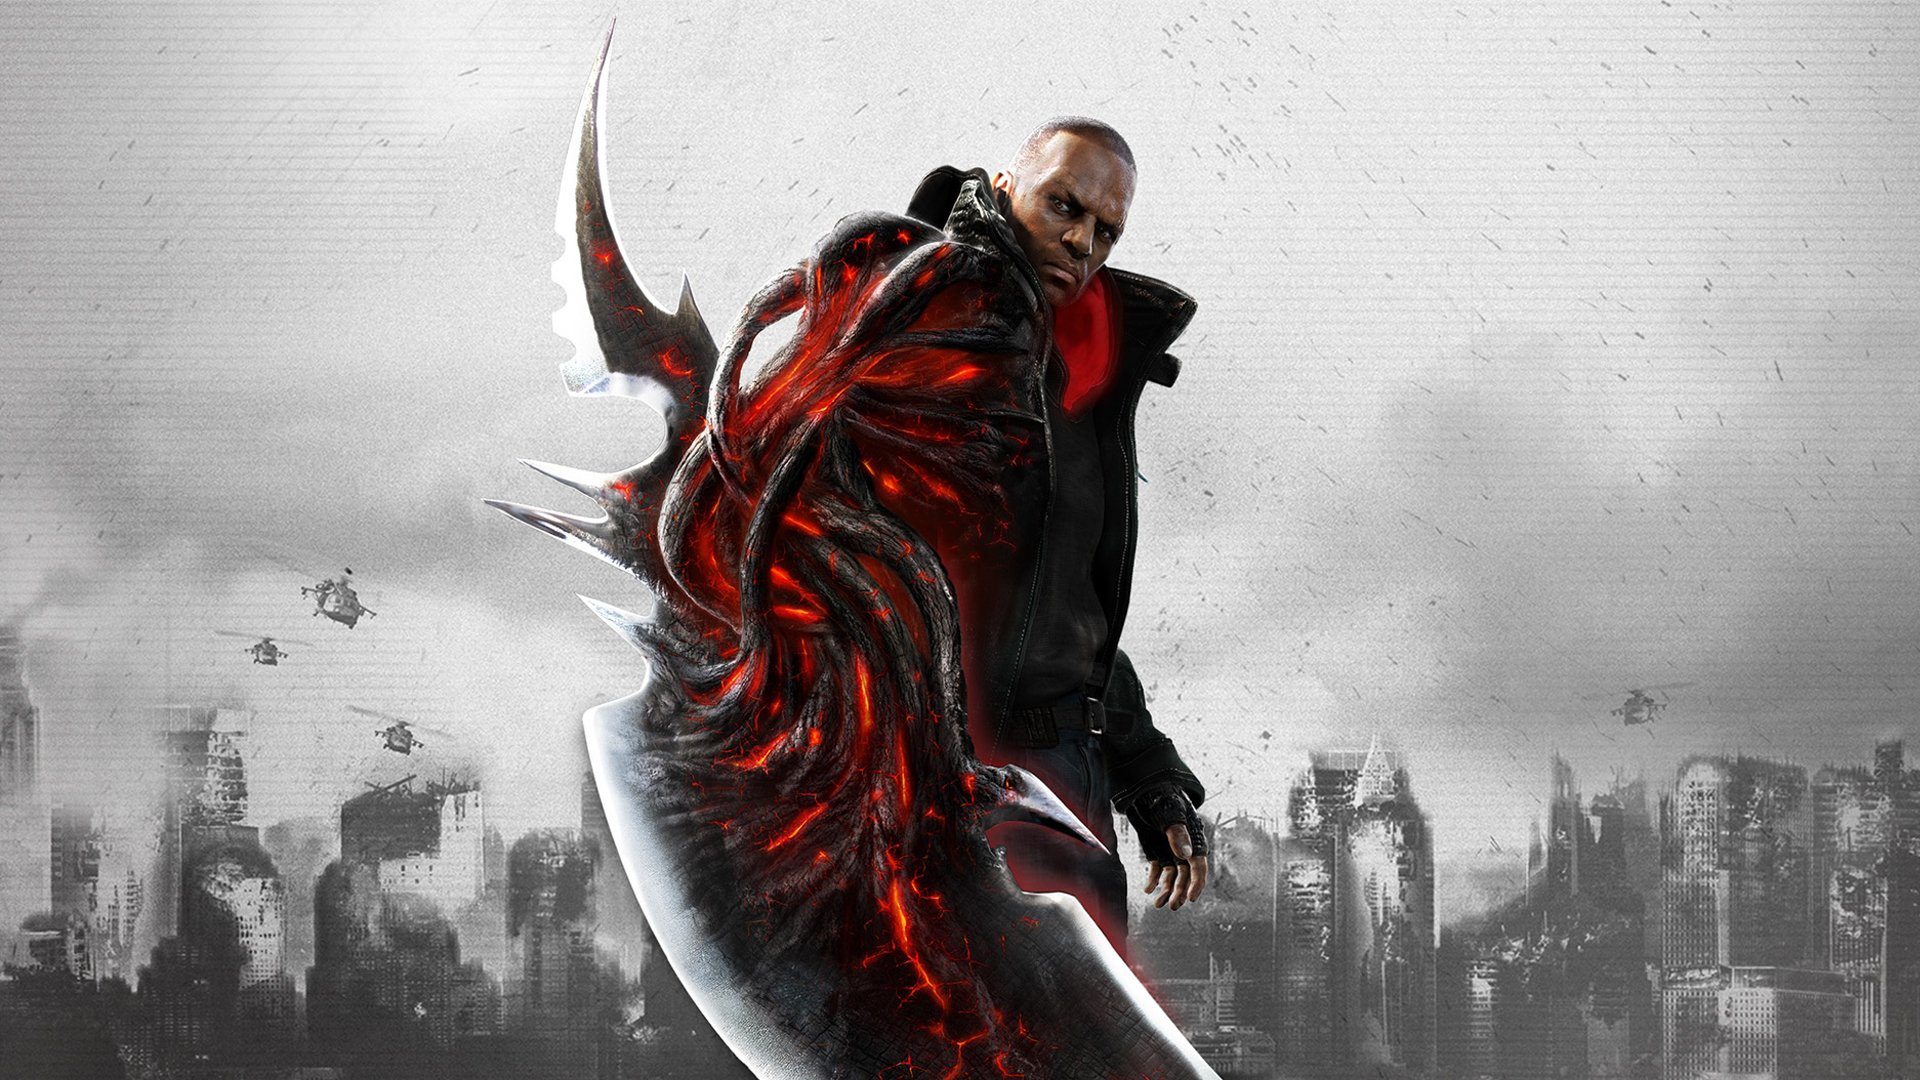 prototype 2 full hd wallpaper and background image | 1920x1080 | id